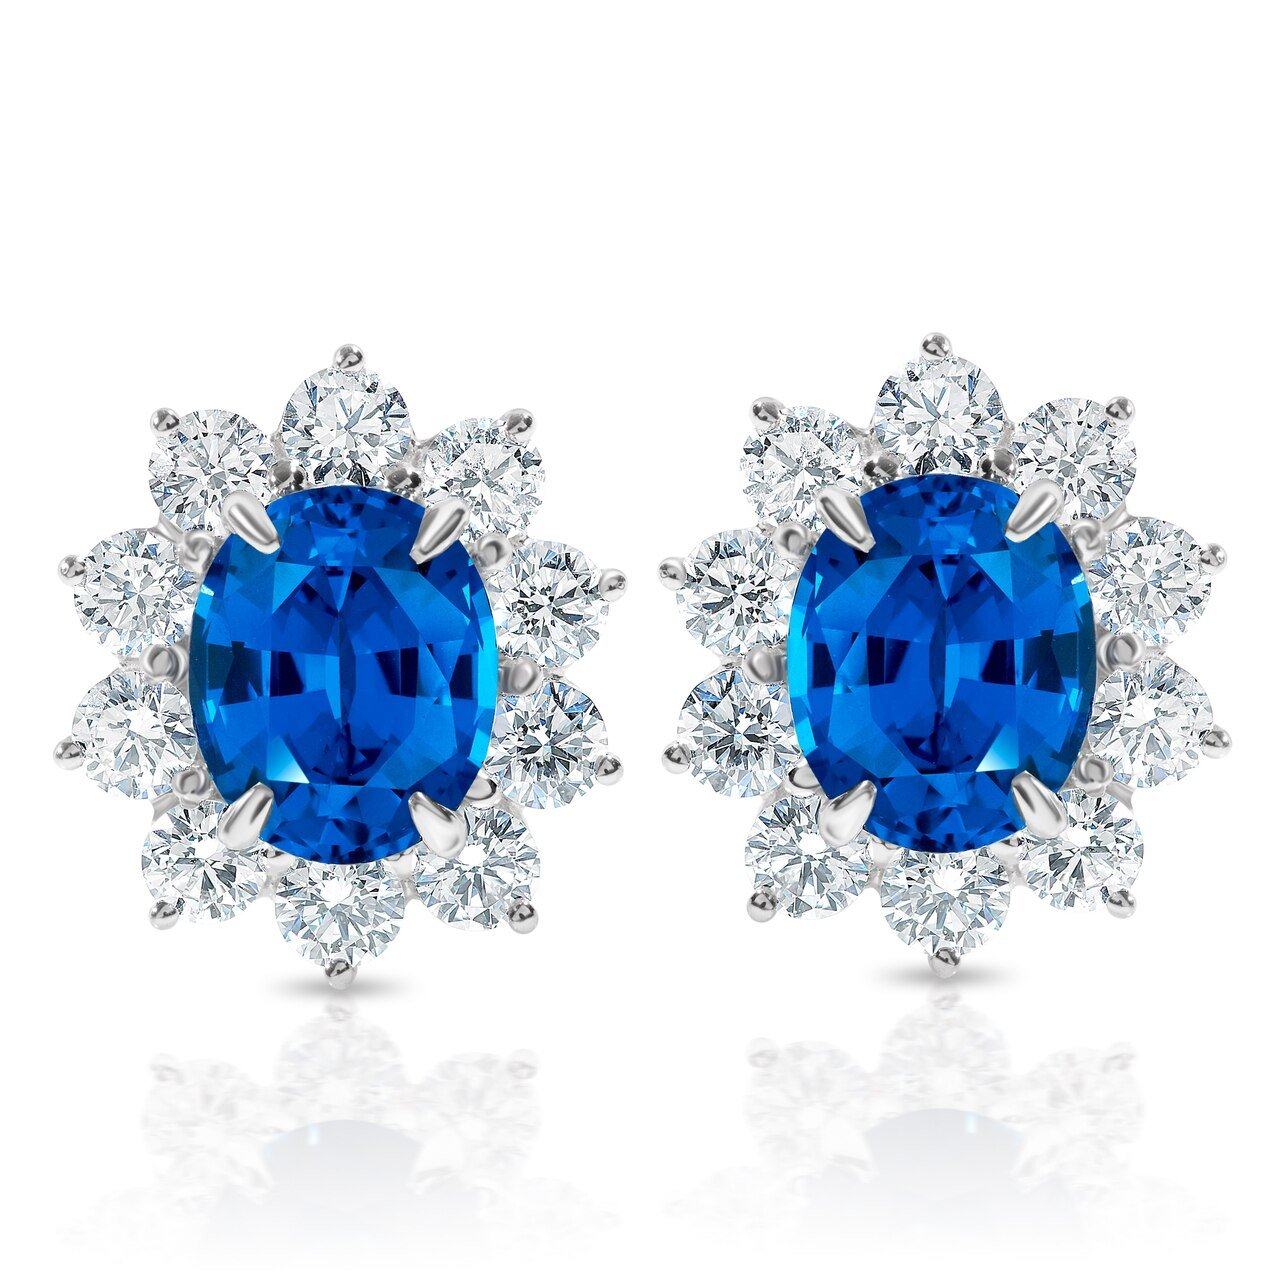 Oval Sapphire and Diamond Earrings